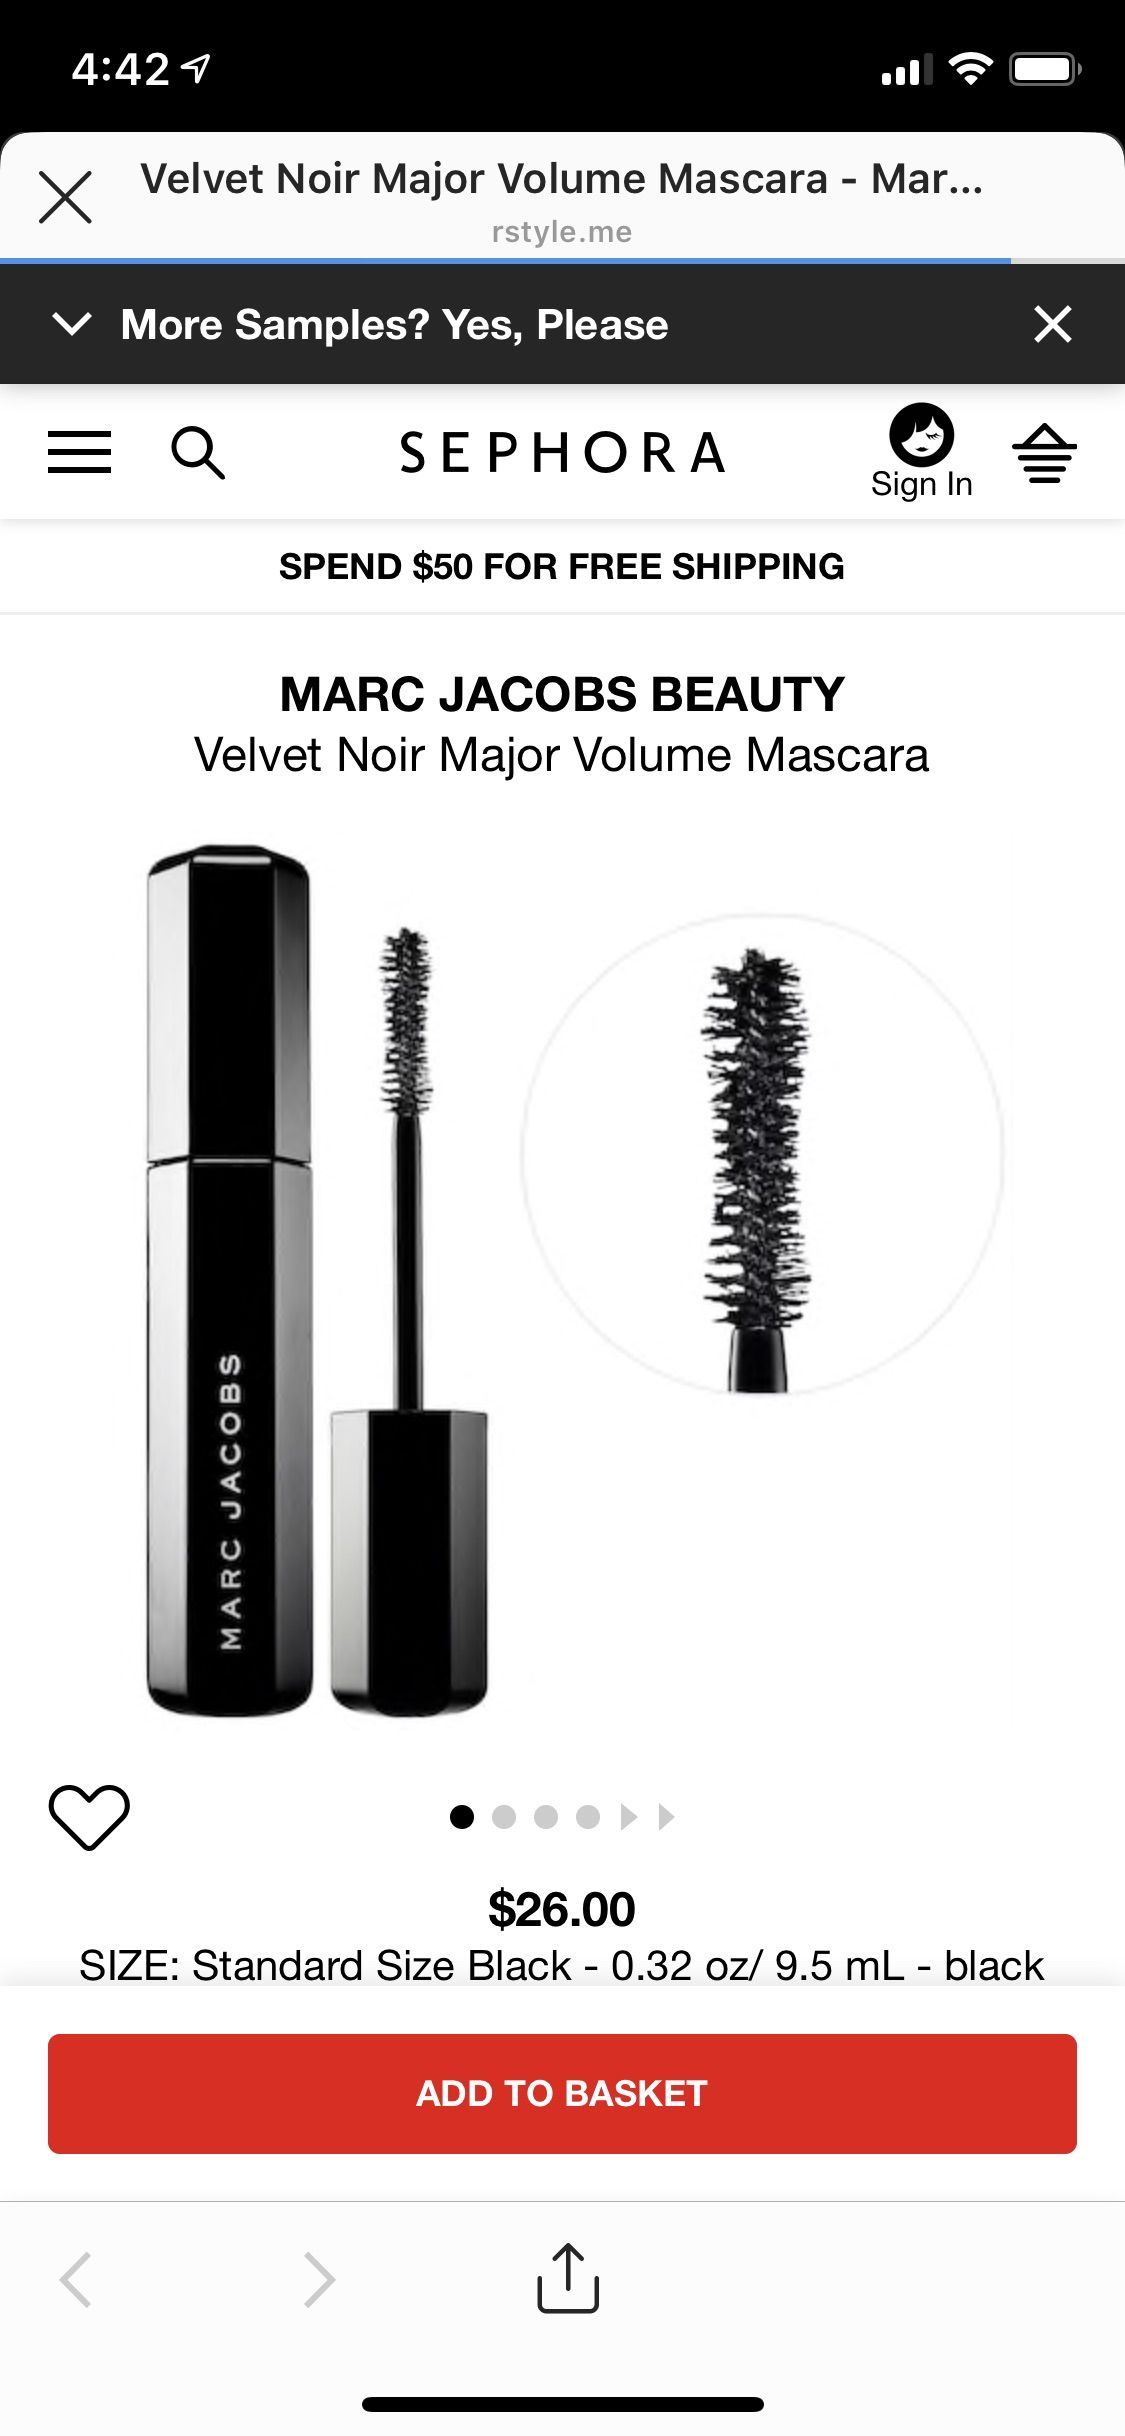 Pin by Haley Bunting on beauty Marc jacobs beauty